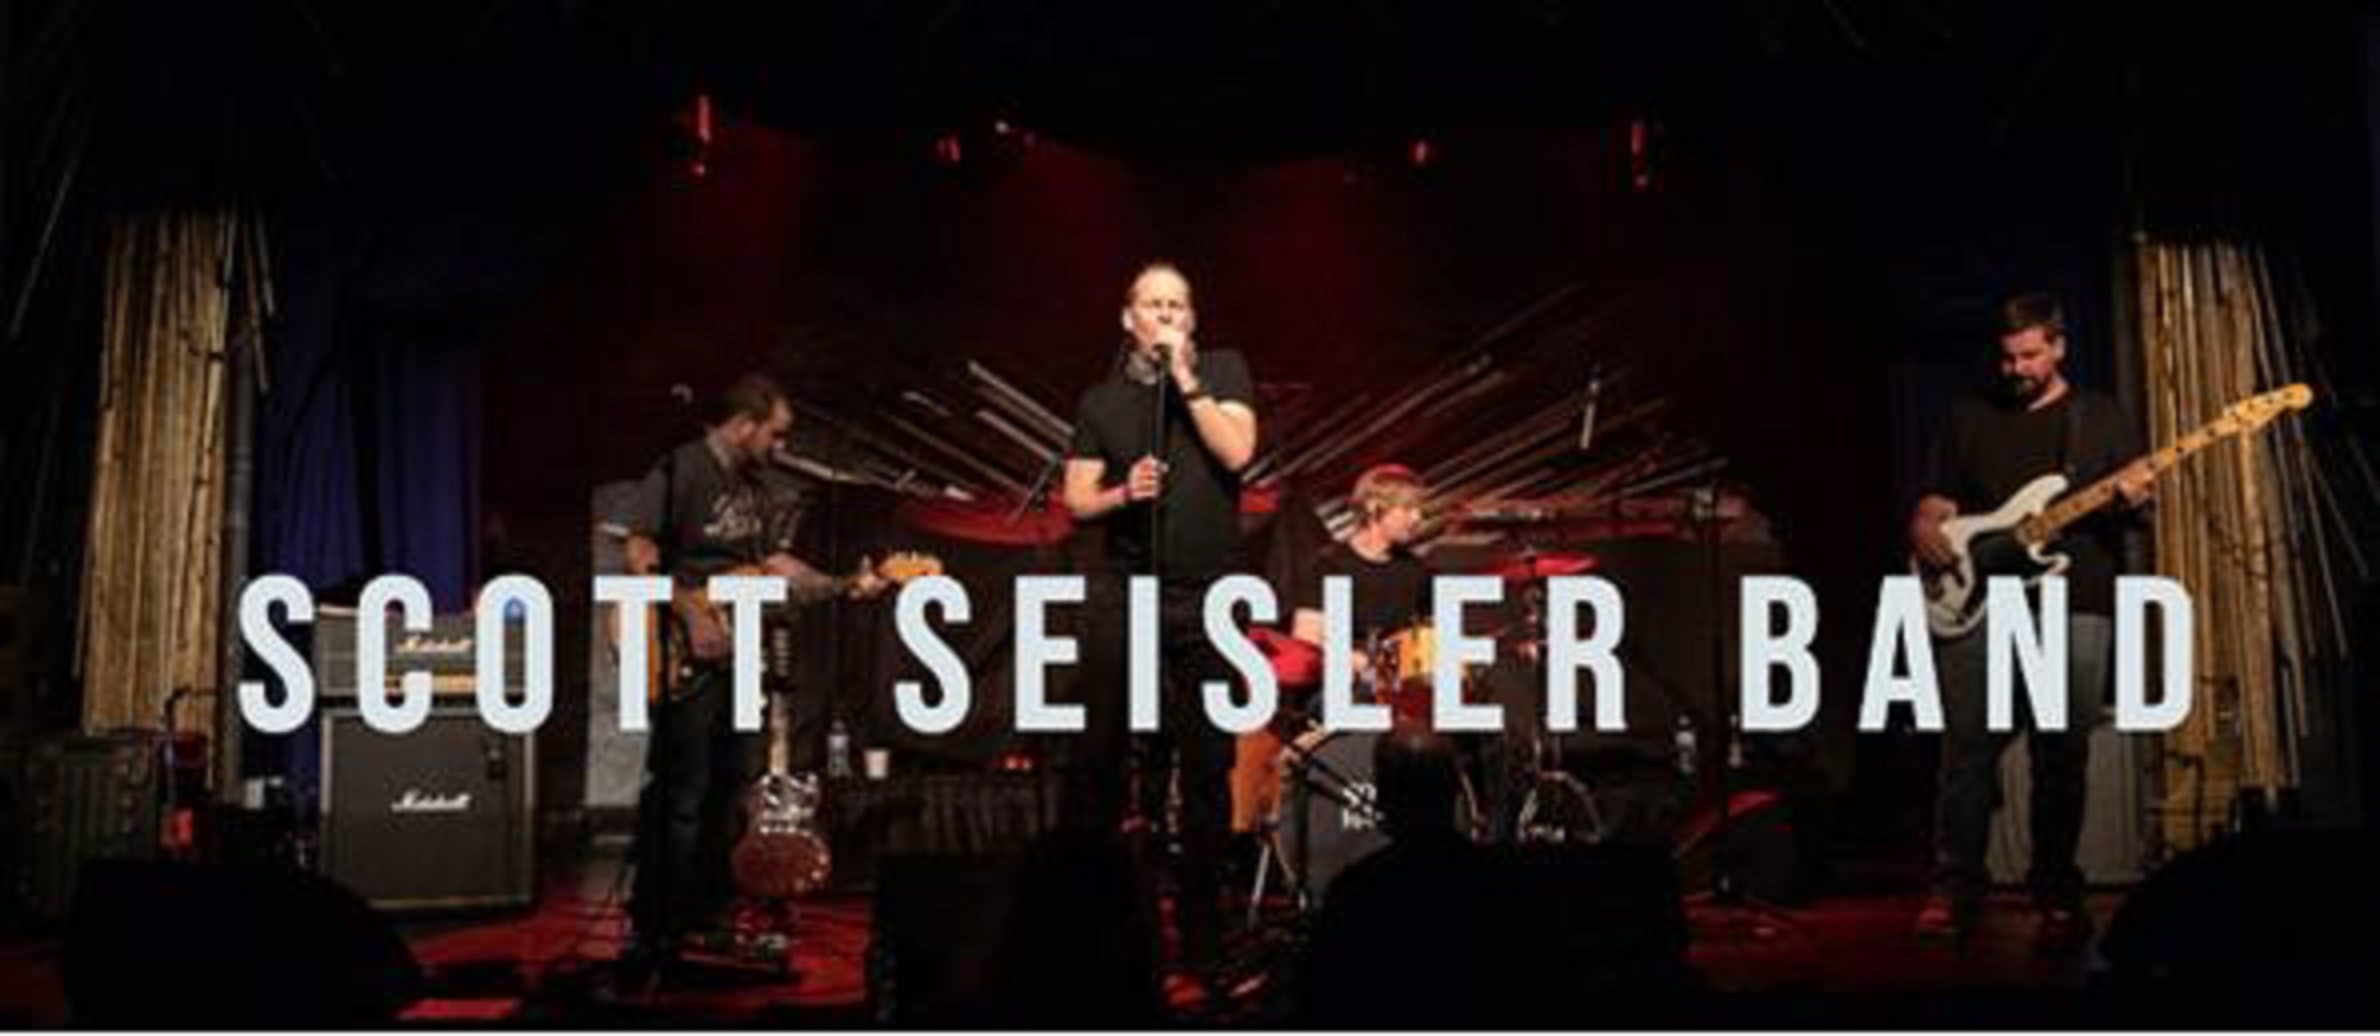 Scott Seisler Band Releases New Single for Glenn Close Charity